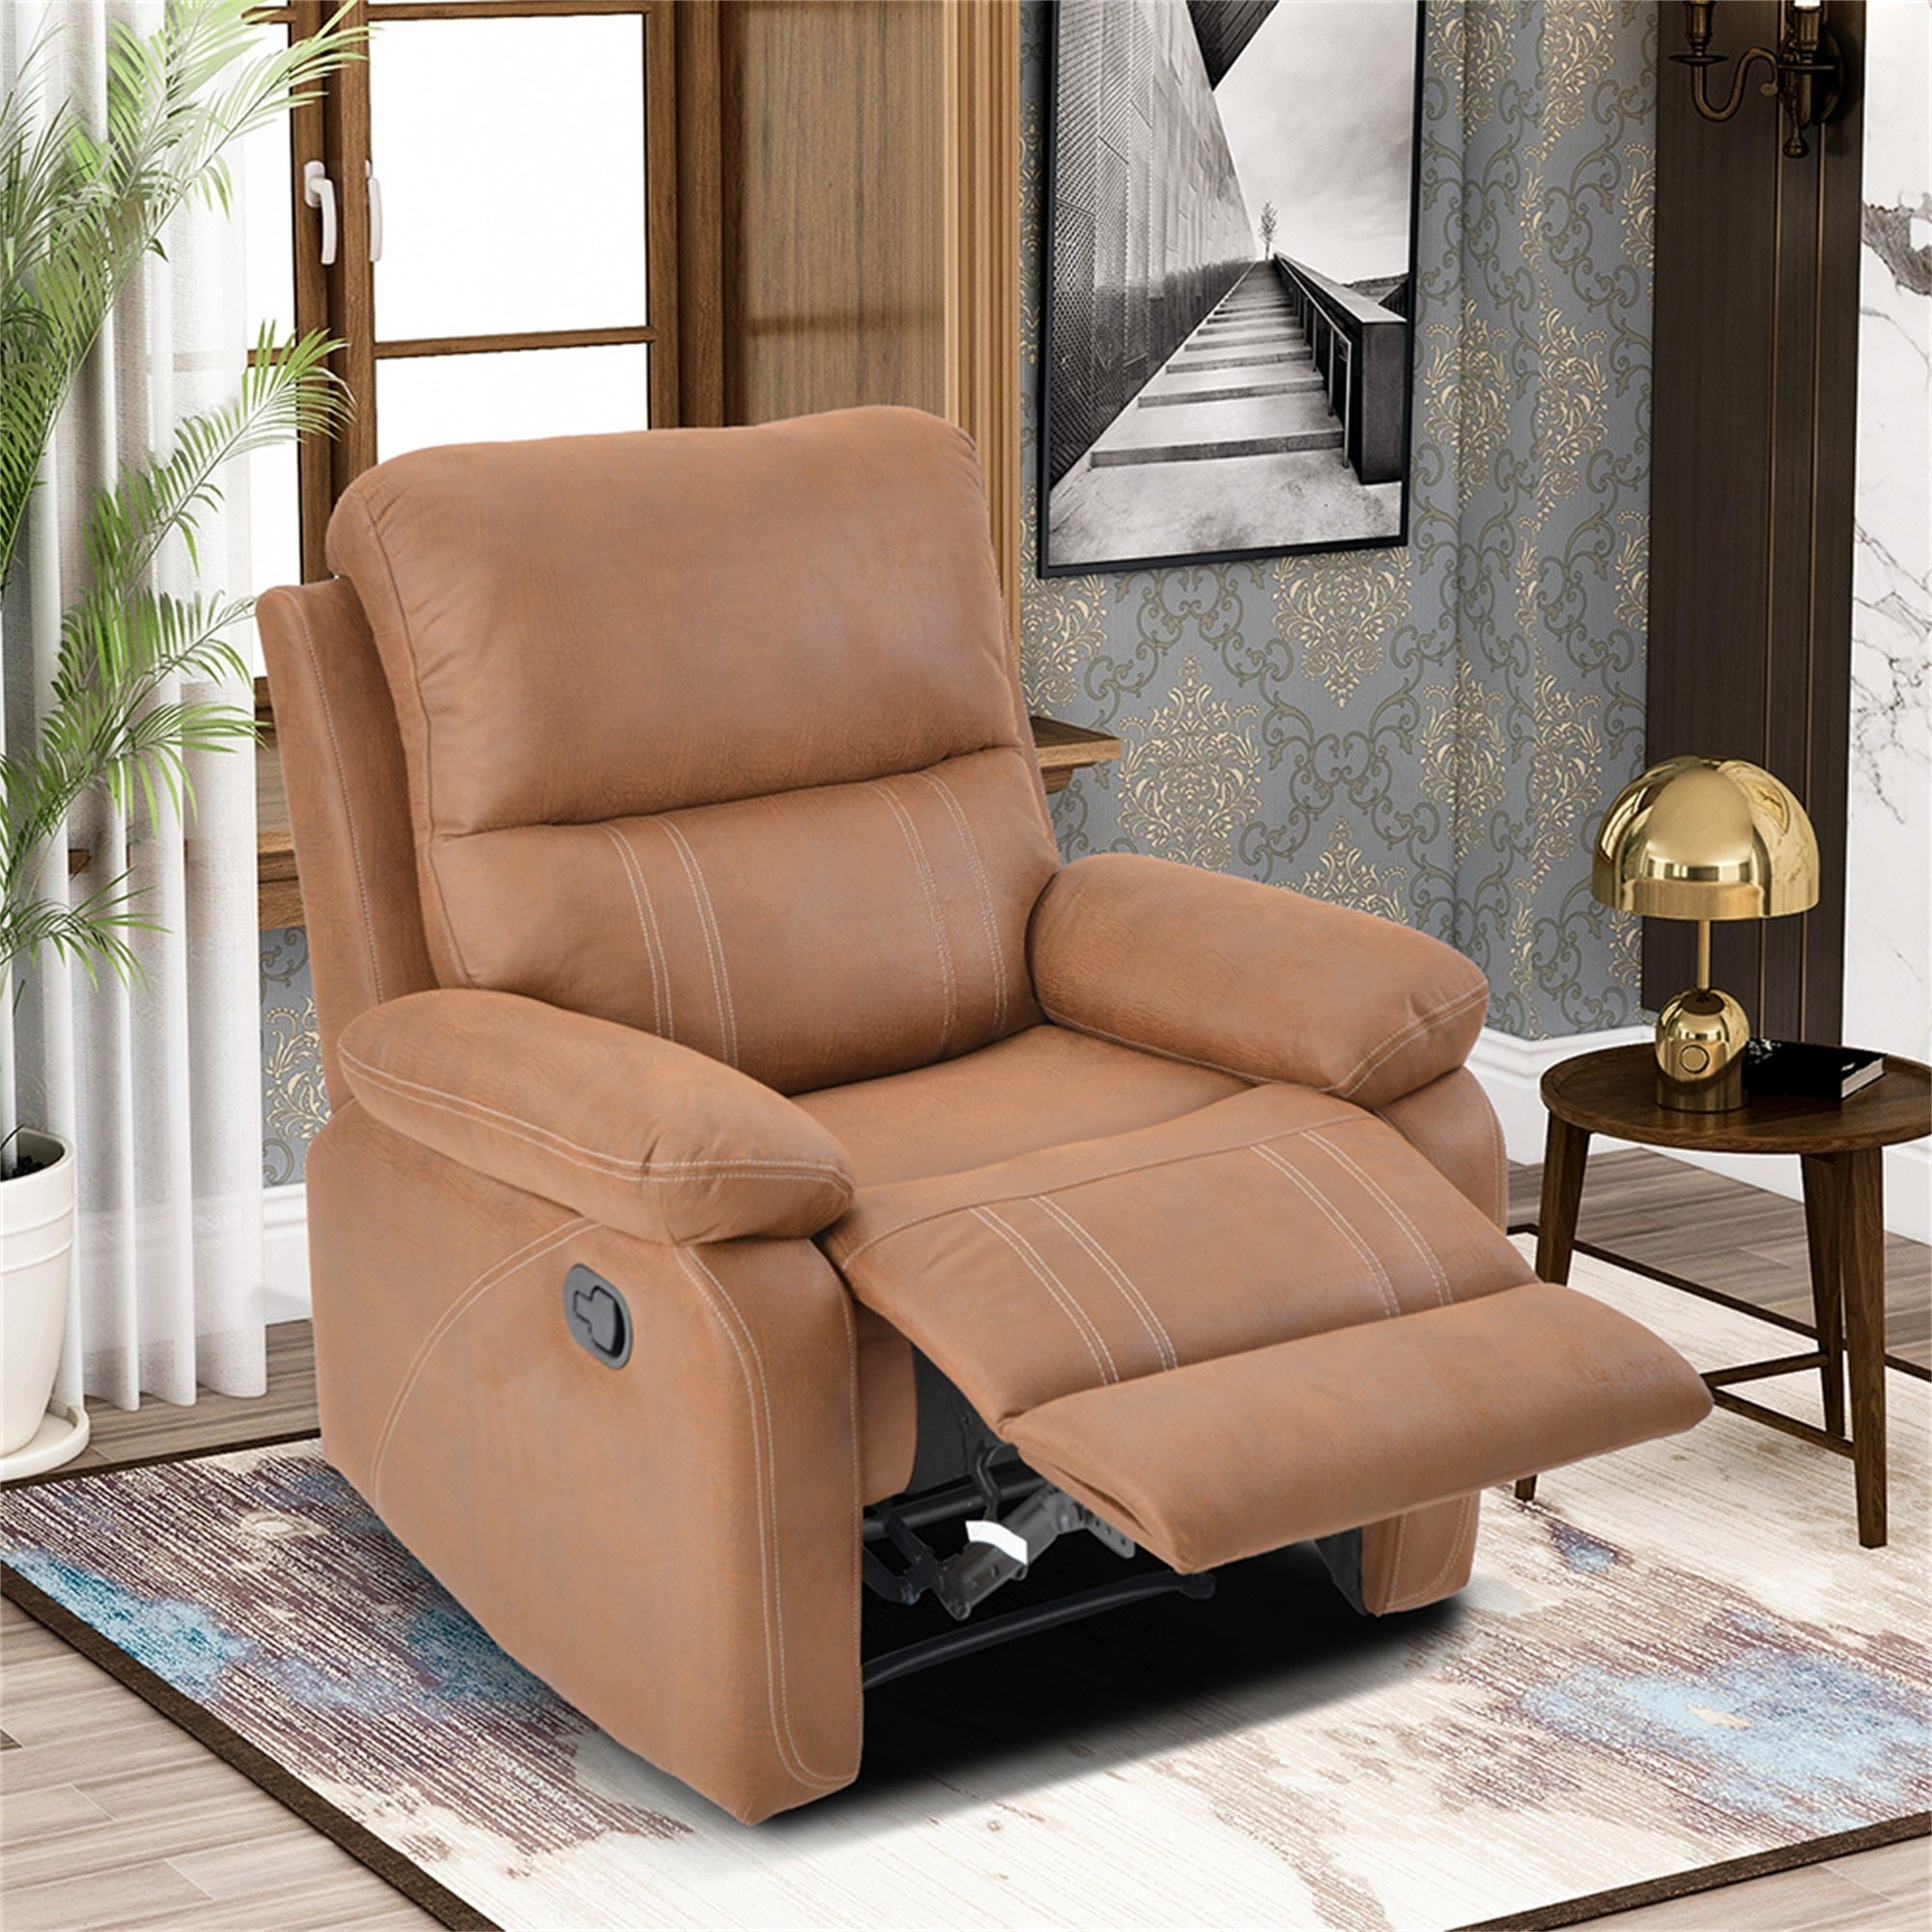 Recliner Chair With Padded Seat Faux Leather Home Theater Seating On Sale Overstock 31806367